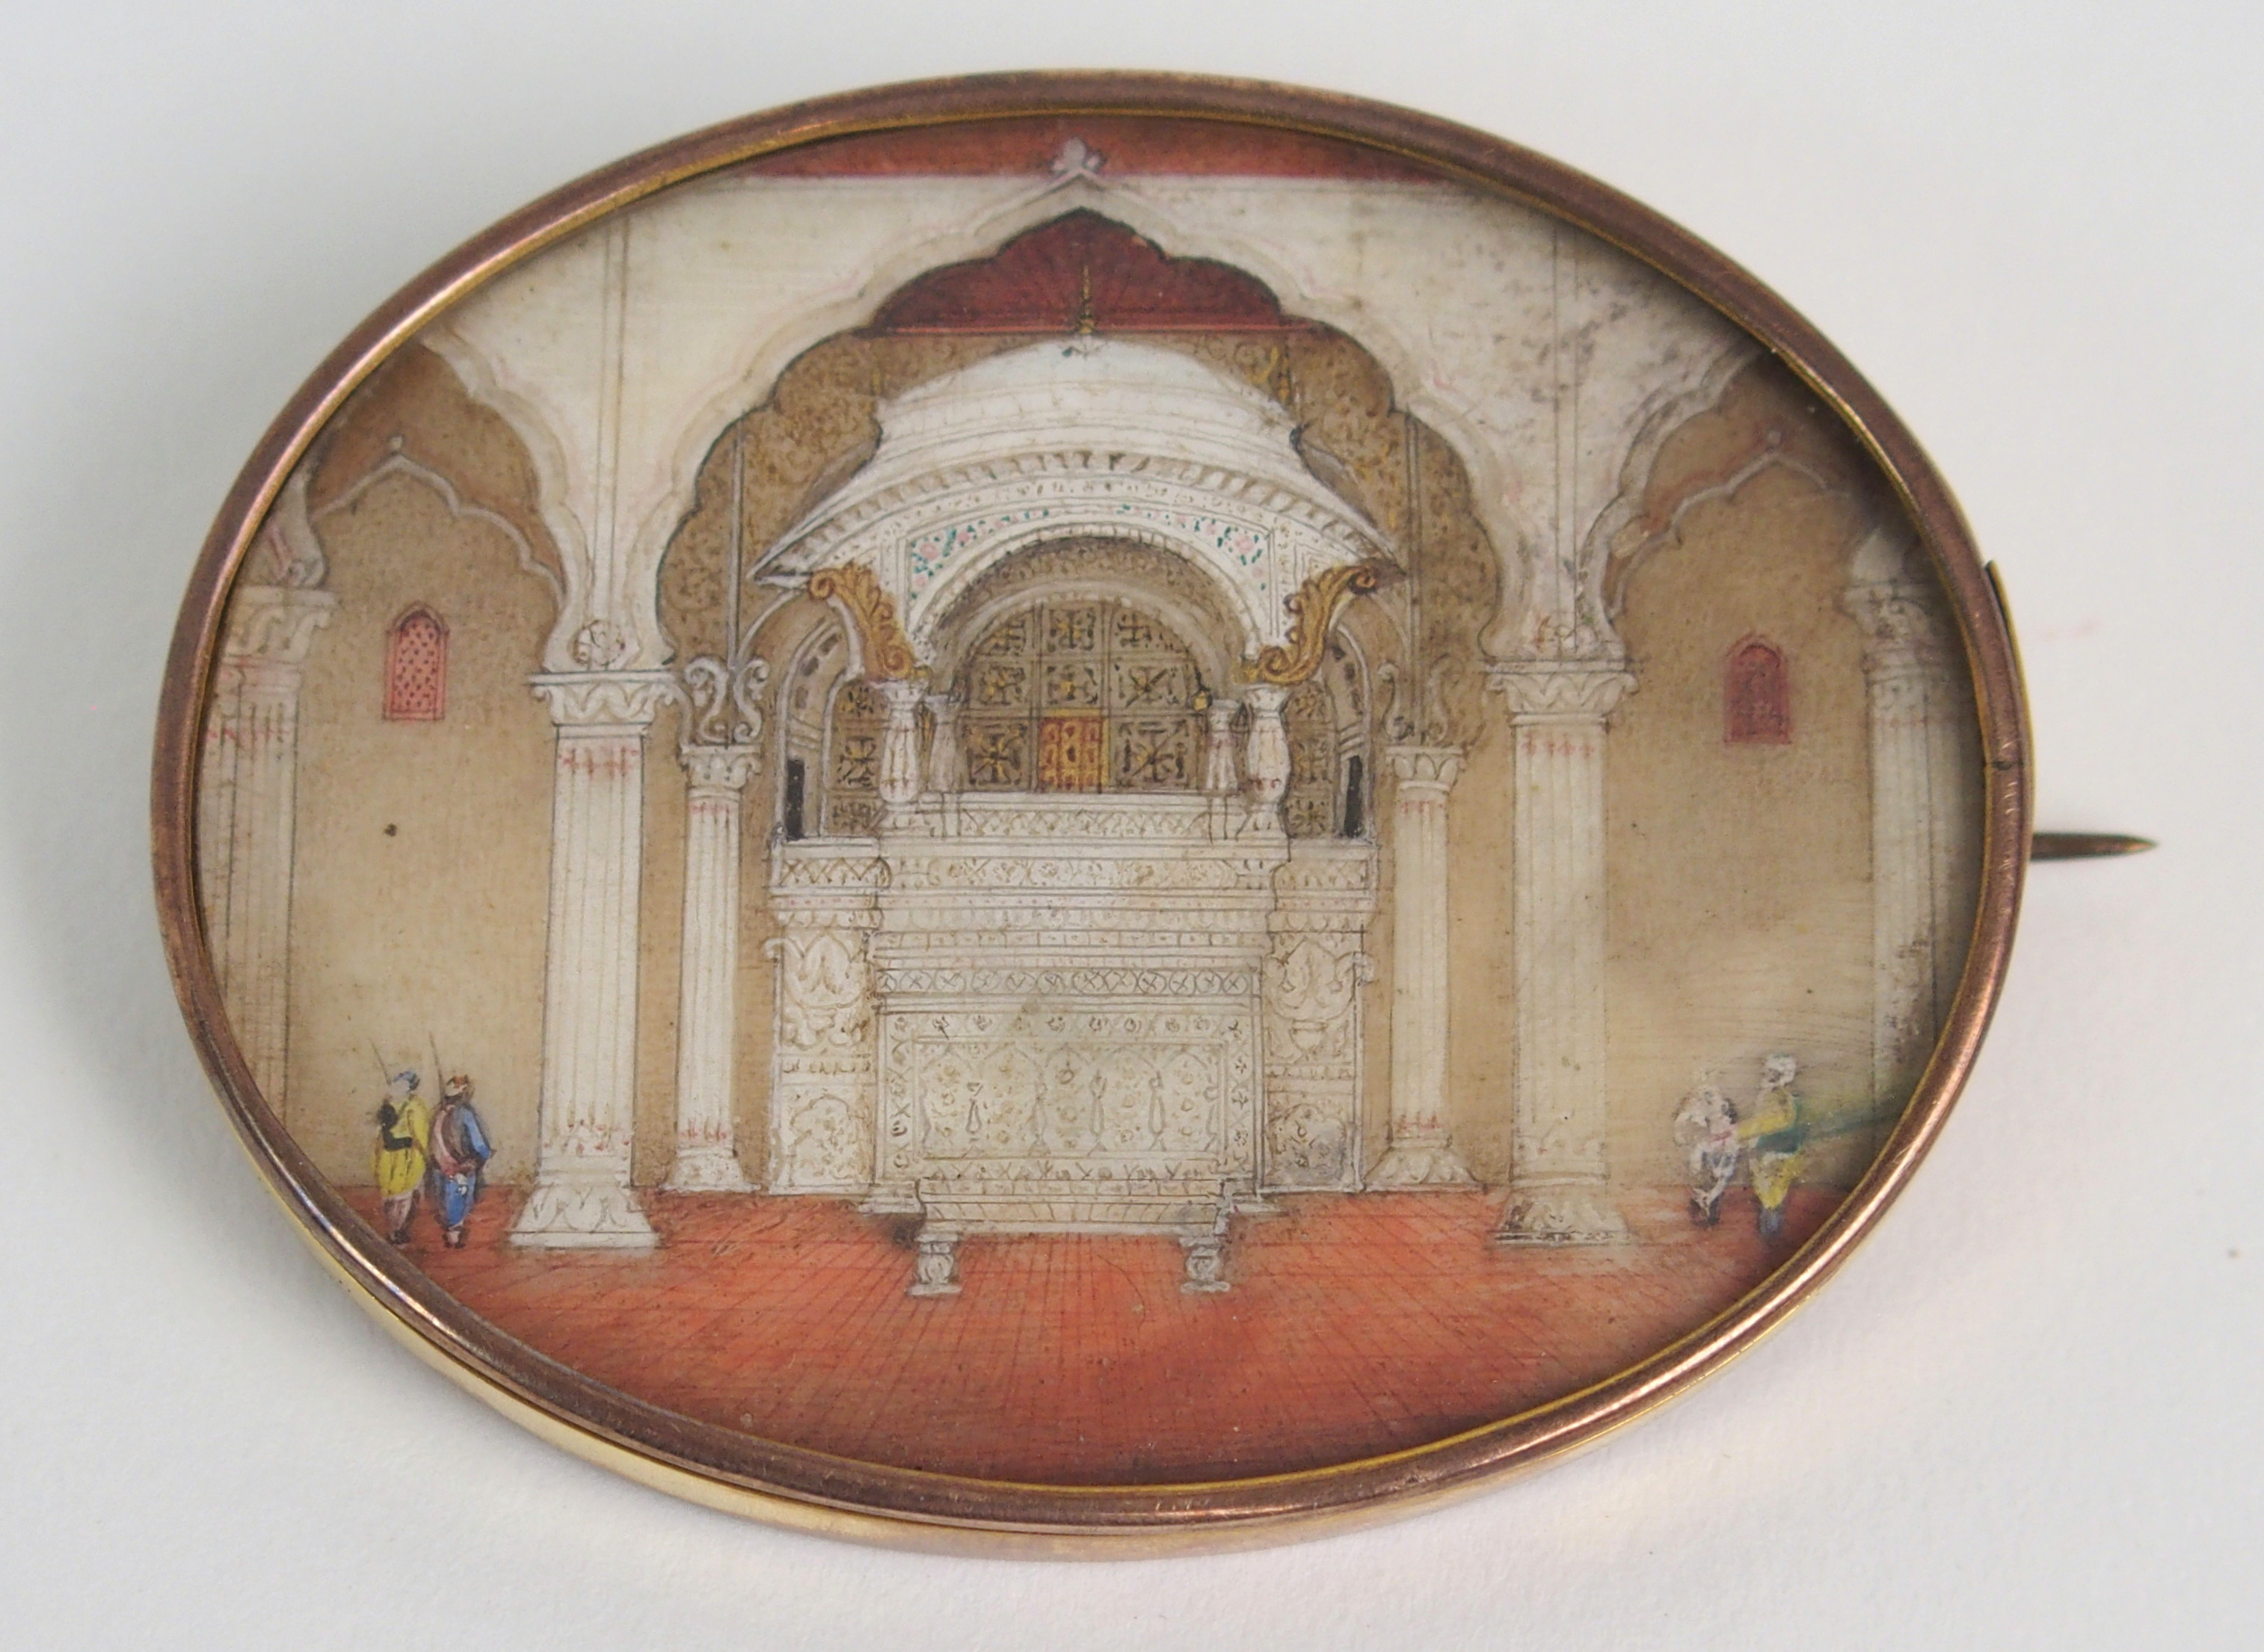 Lot 41 - AN INDIAN IVORY MINIATURE painted with military guards in a palace, gilt metal mount, 5.5cm wide and